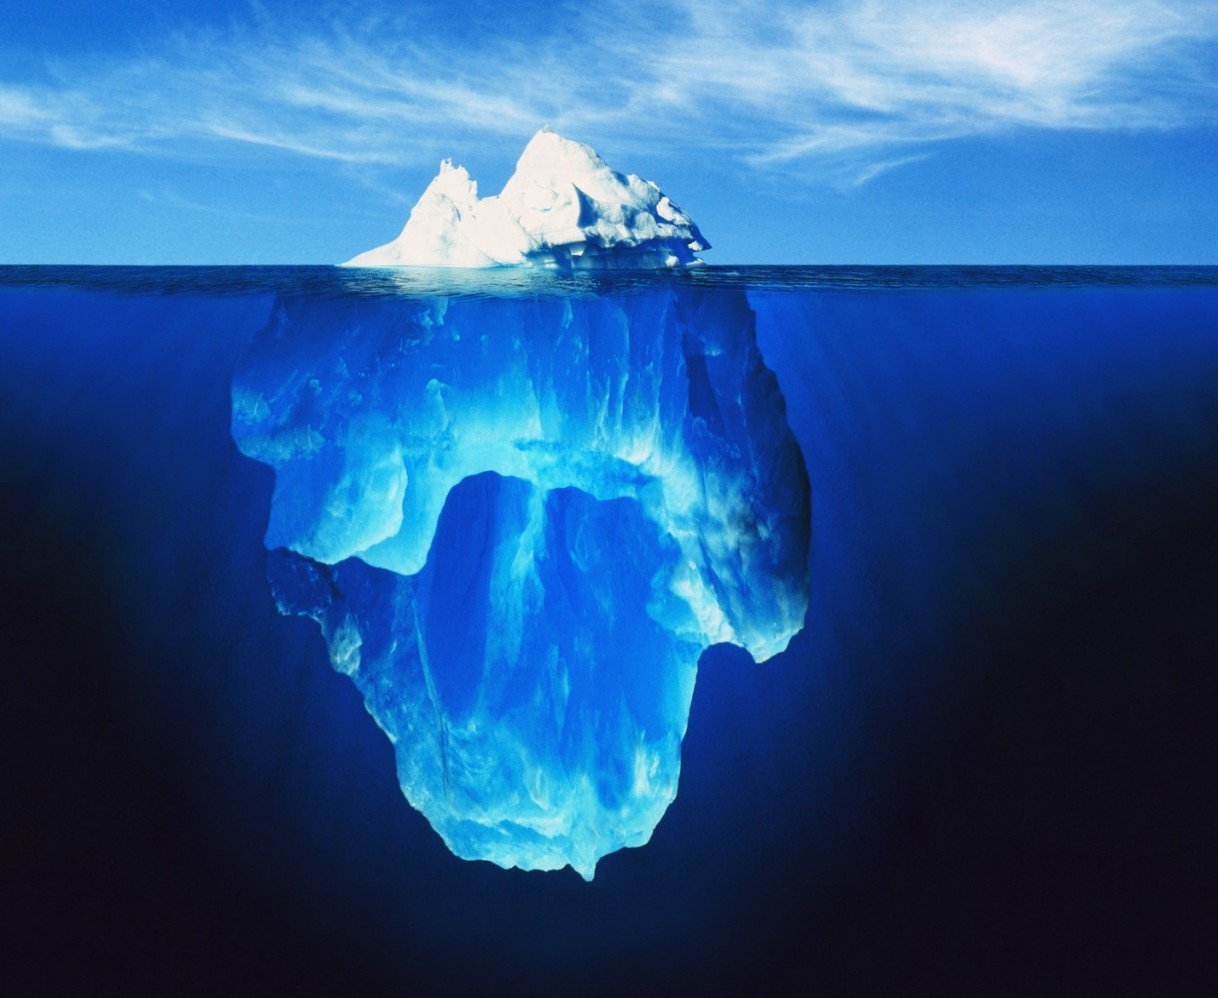 Grow with Digital Marketing iceberg